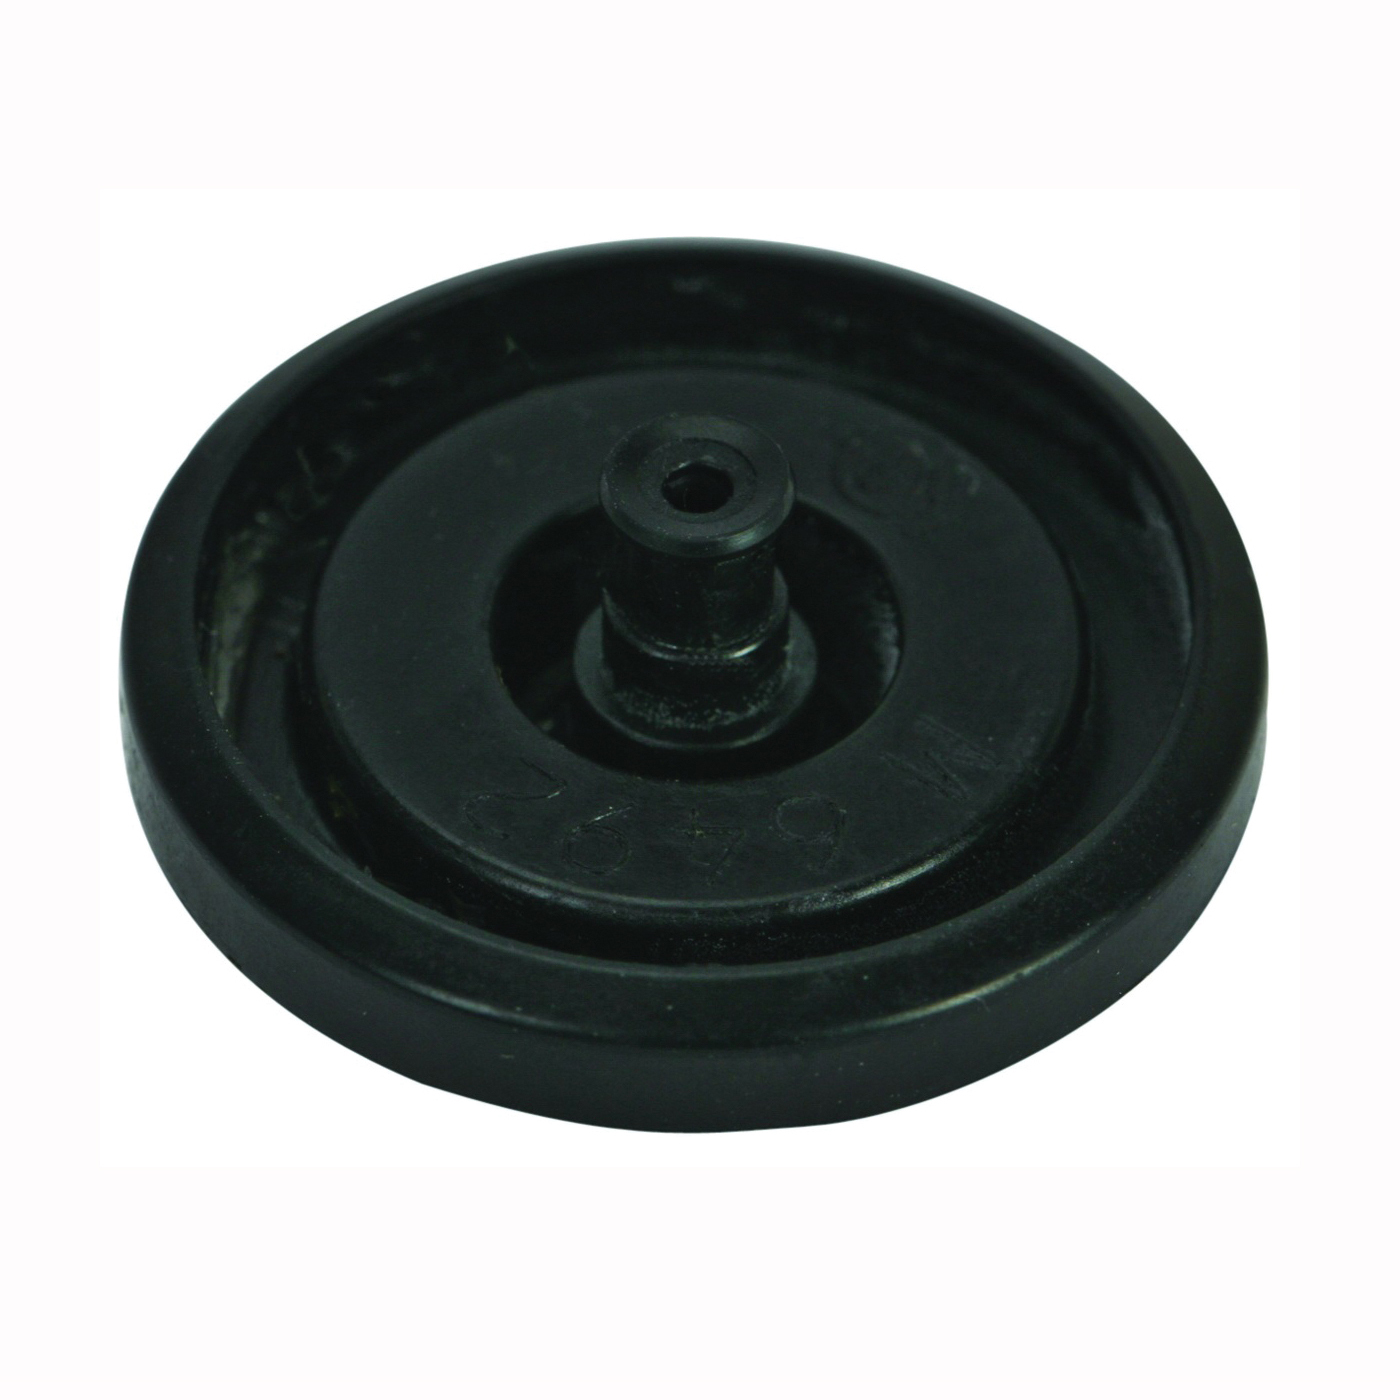 Picture of FLUIDMASTER 242 Toilet Replacement Seal, Ballcock, Rubber, For: 400A Toilet Fill Valve